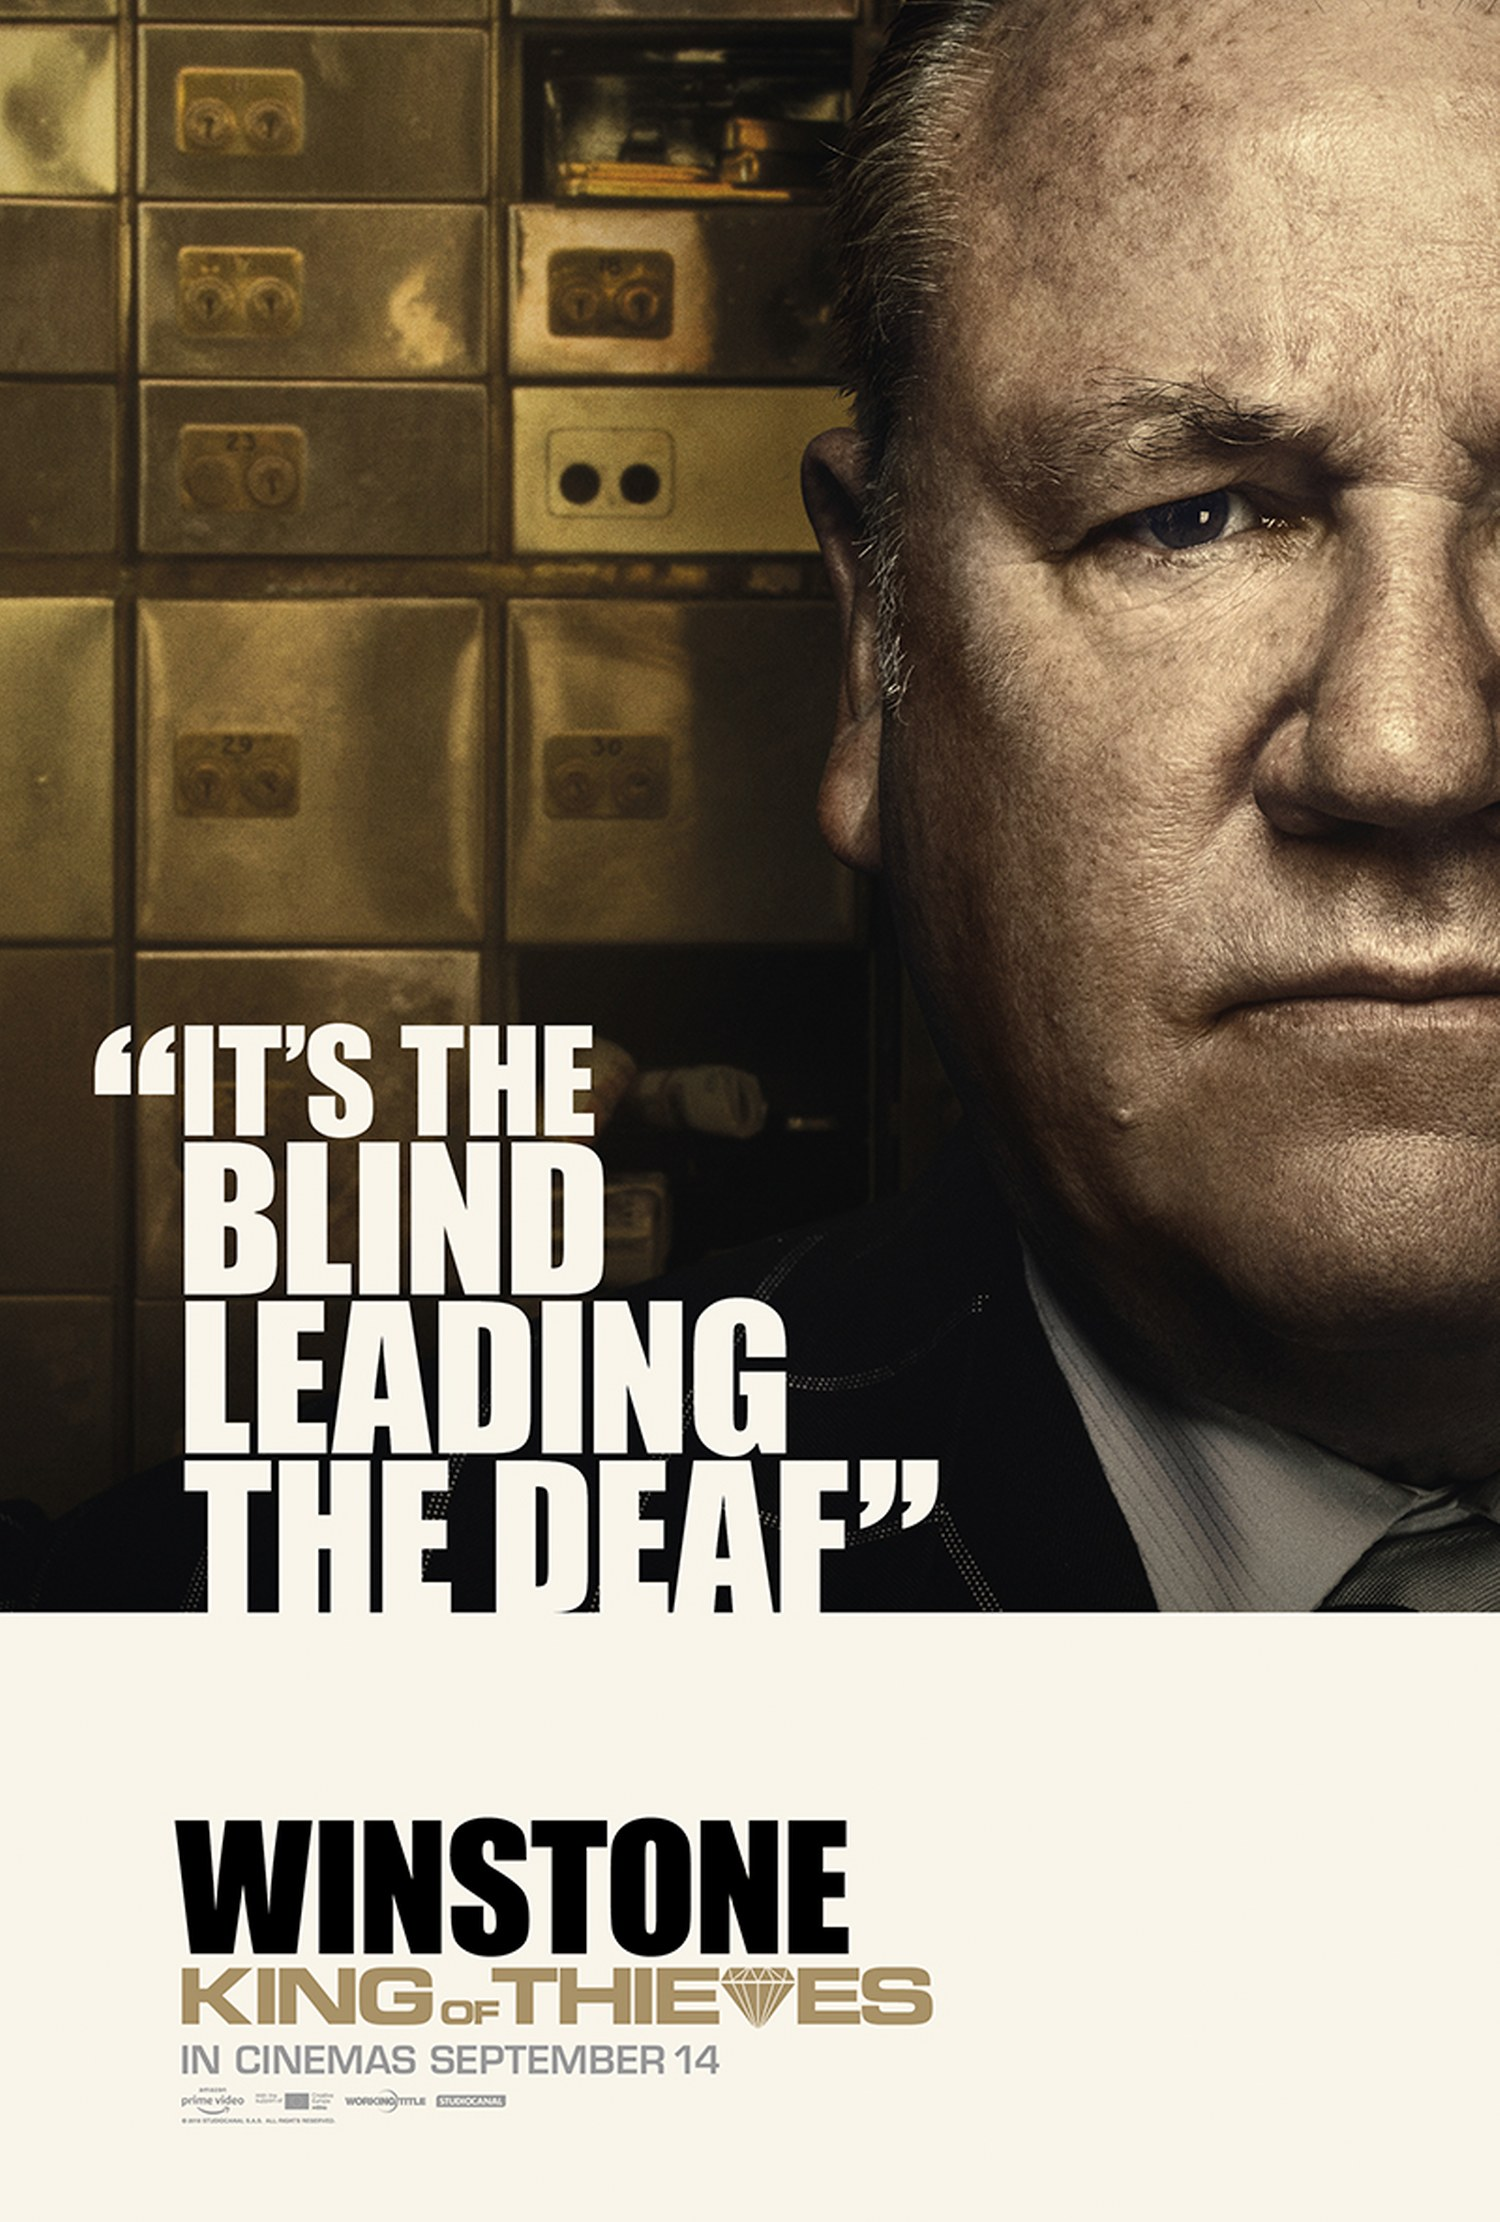 1$_Winstone_AW_King of Thieves